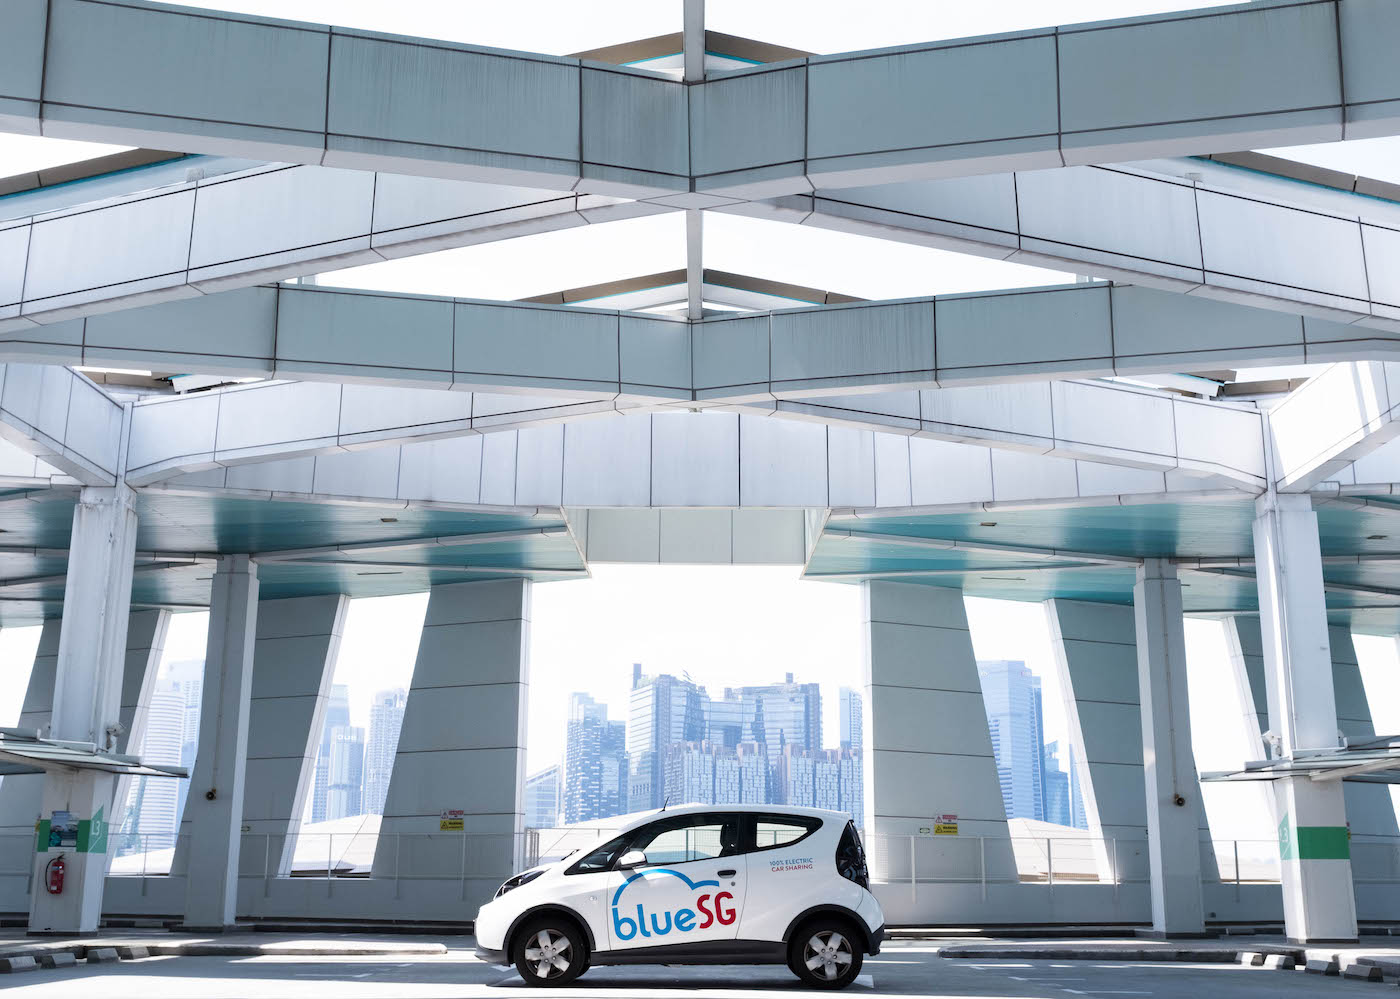 bluesg electric car on the road